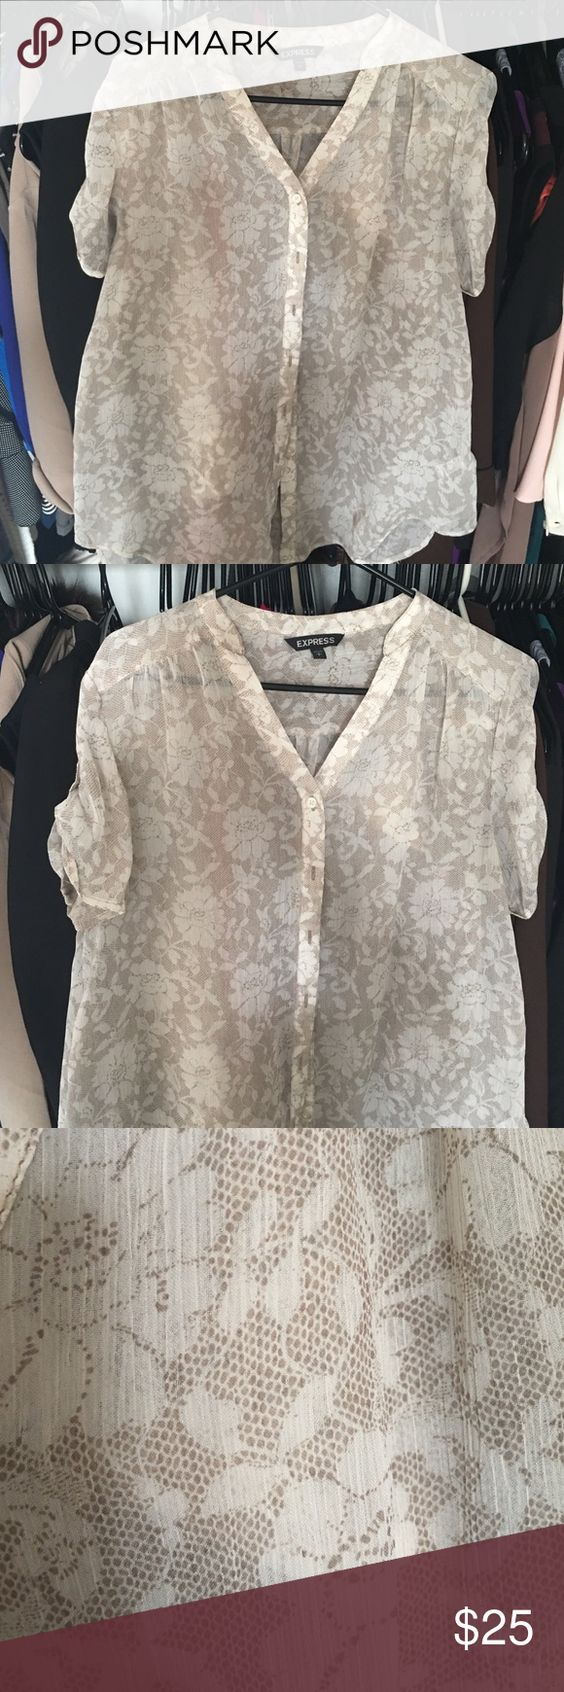 Beige Flowery Sheer Top A super cute sheer top from Express. Barely used. I used to wear it with white shorts and sandals for casual and then a beige cami and slacks for work. I accept reasonable offers. Tops Button Down Shirts